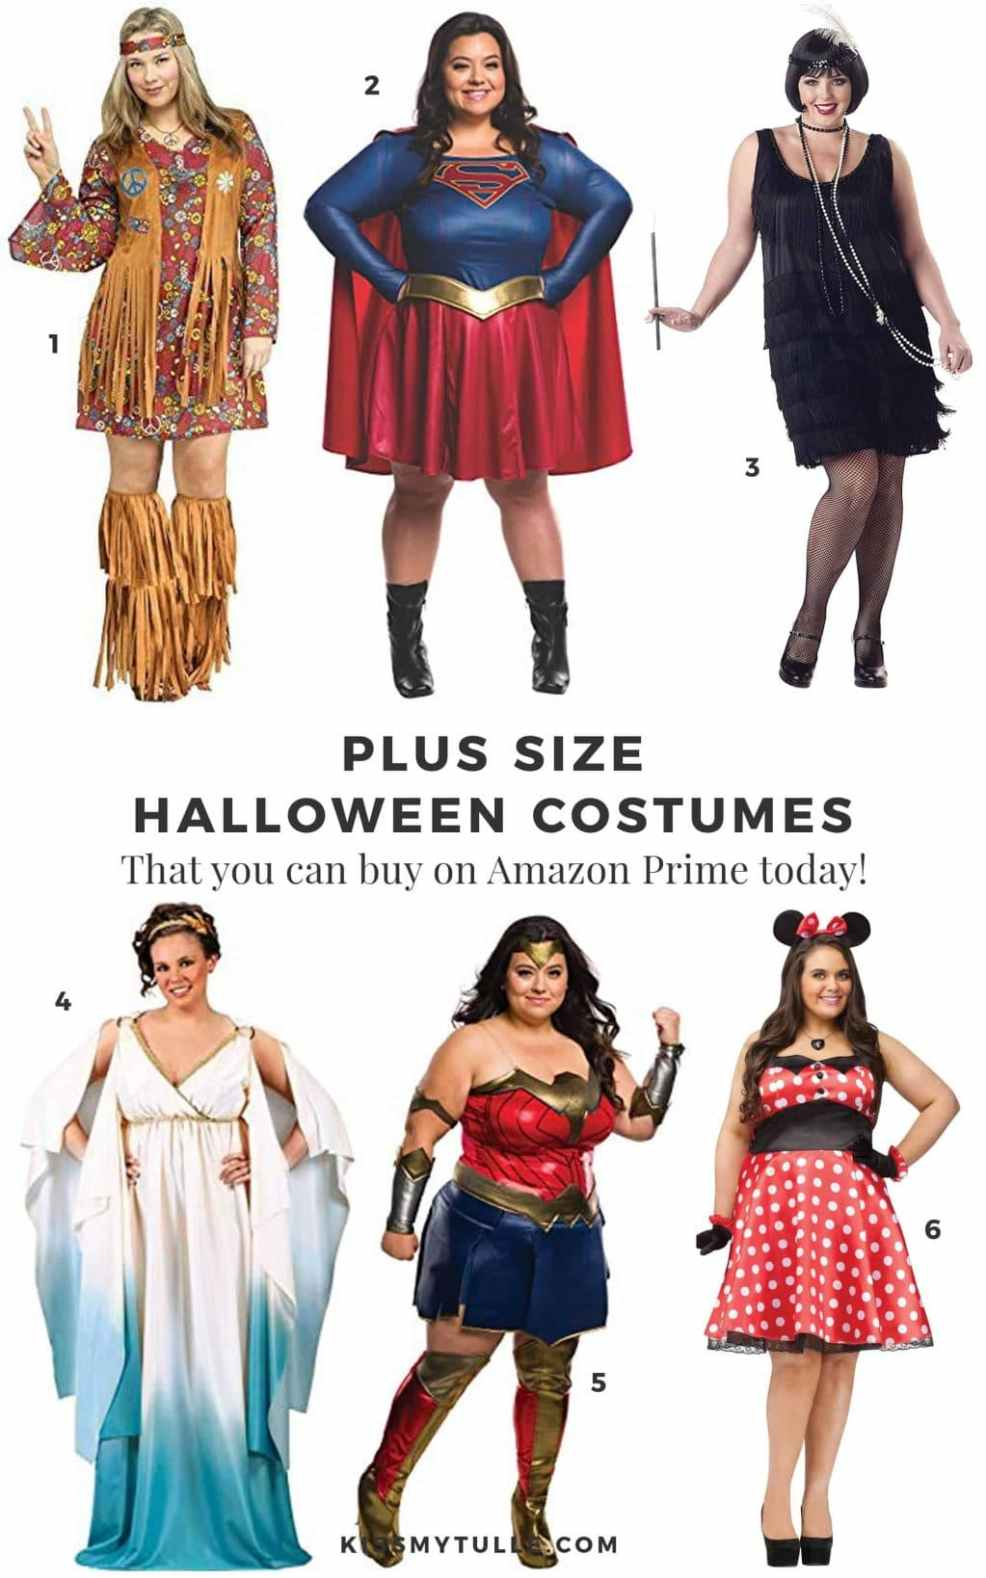 In case y'all are in the same I'm-curvy-but-need-a-last-minute-Halloween-costume bind, here's a few sexy and NOT sexy ones that I found! #AmazonPrime #Halloween #plussize #costume